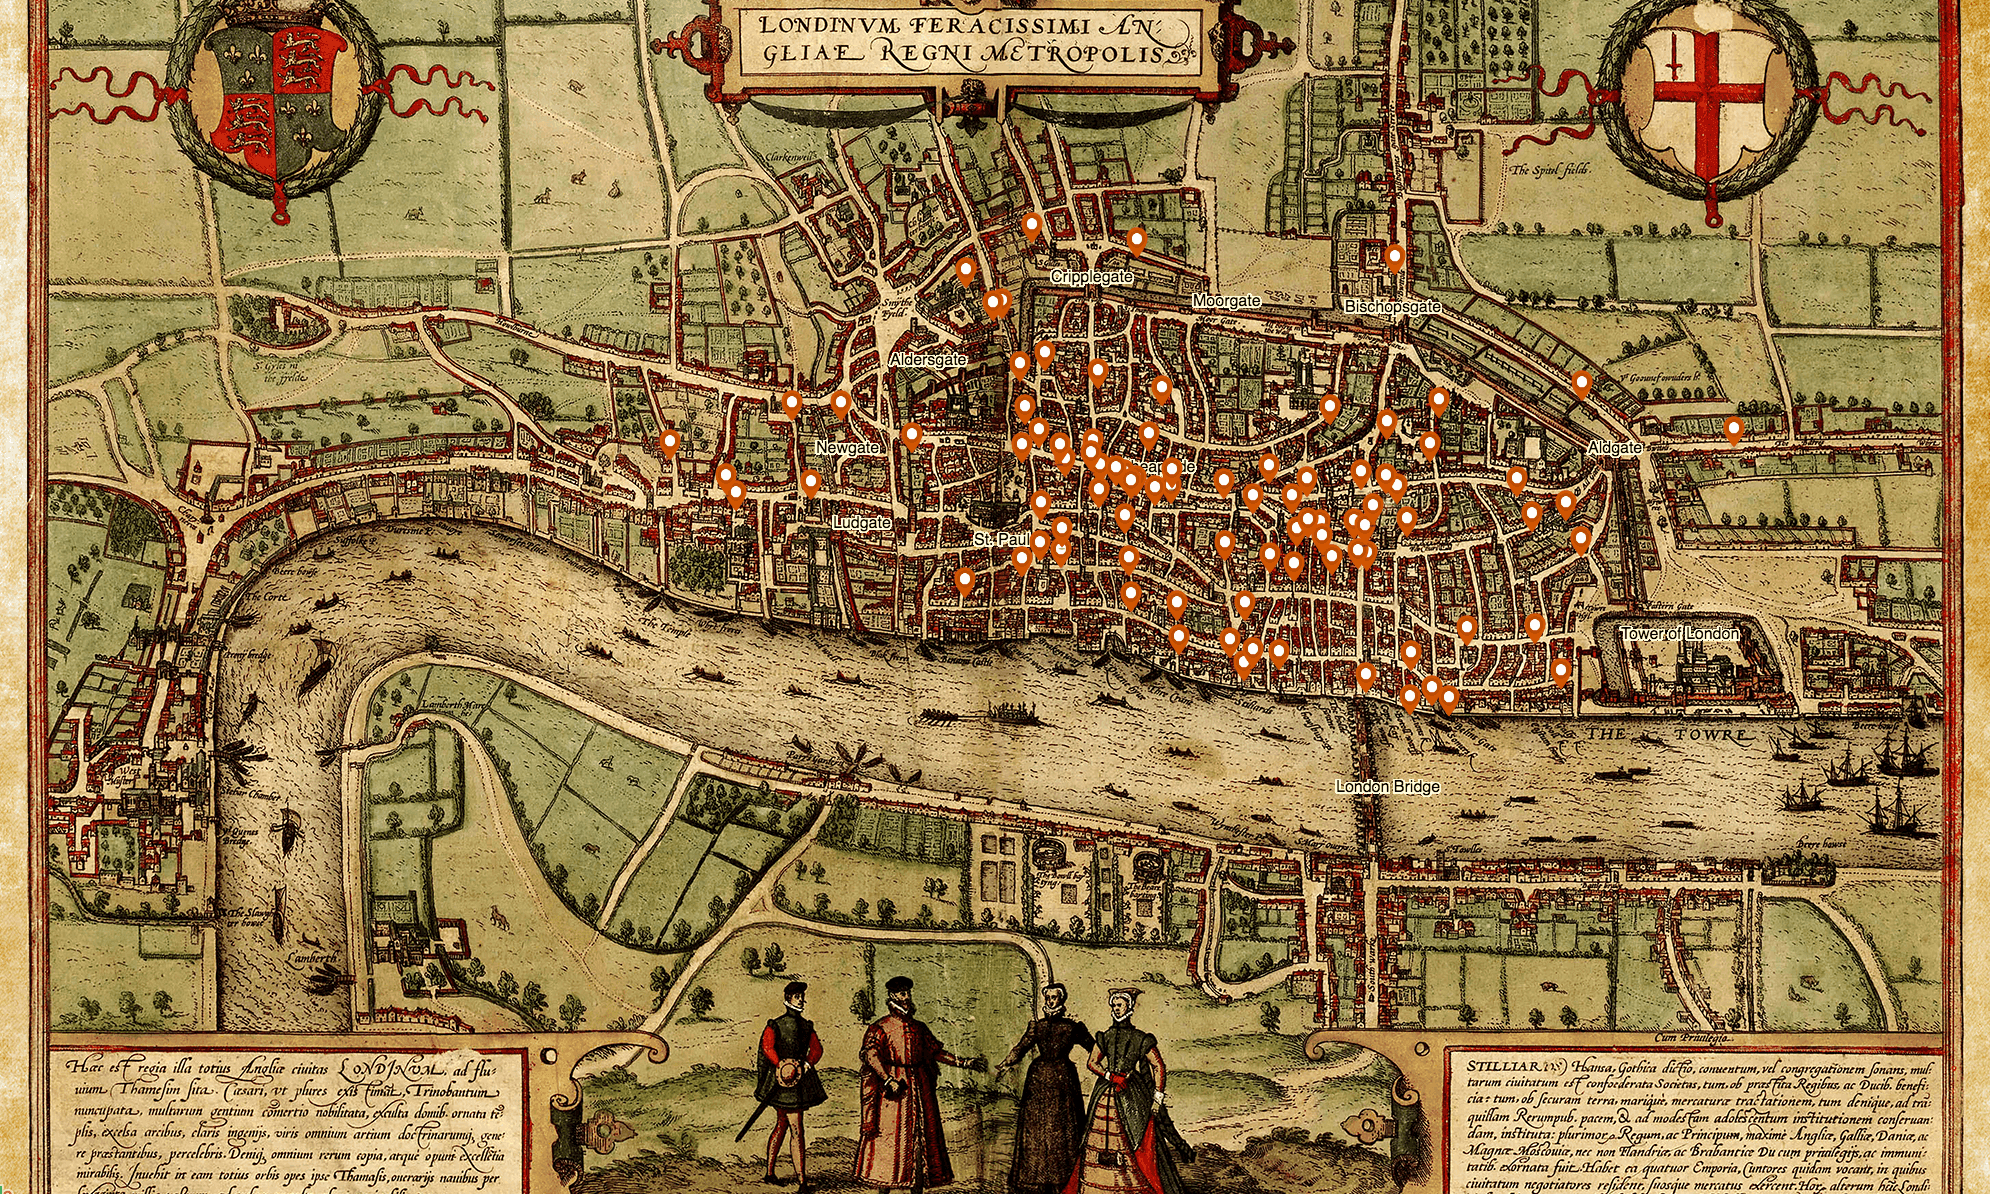 New interactive death map breathes life into medieval London